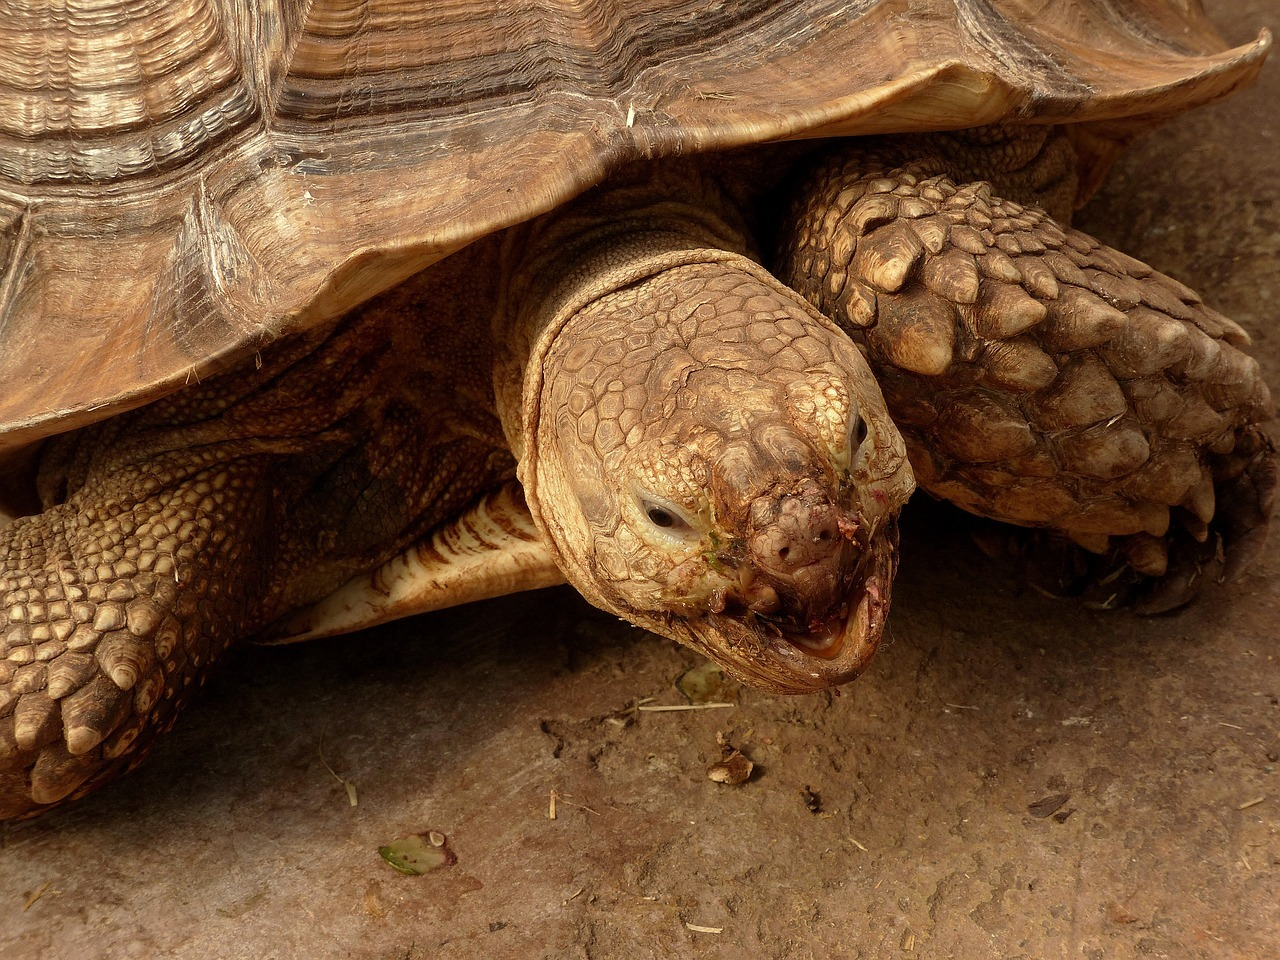 Awesome Facts About Tortoise